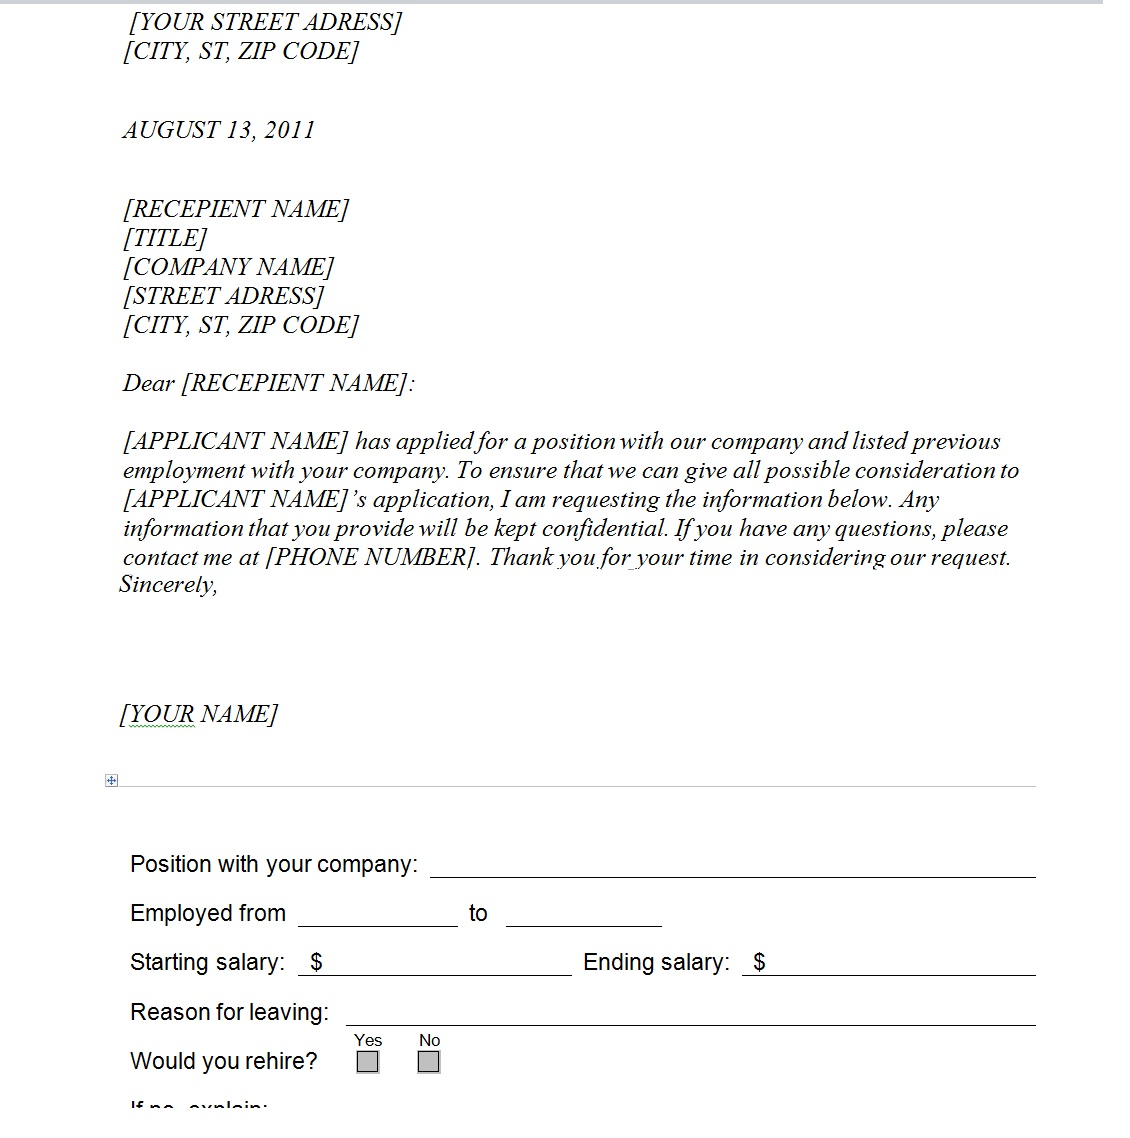 Employment verification template previous employment verification request template sample altavistaventures Choice Image